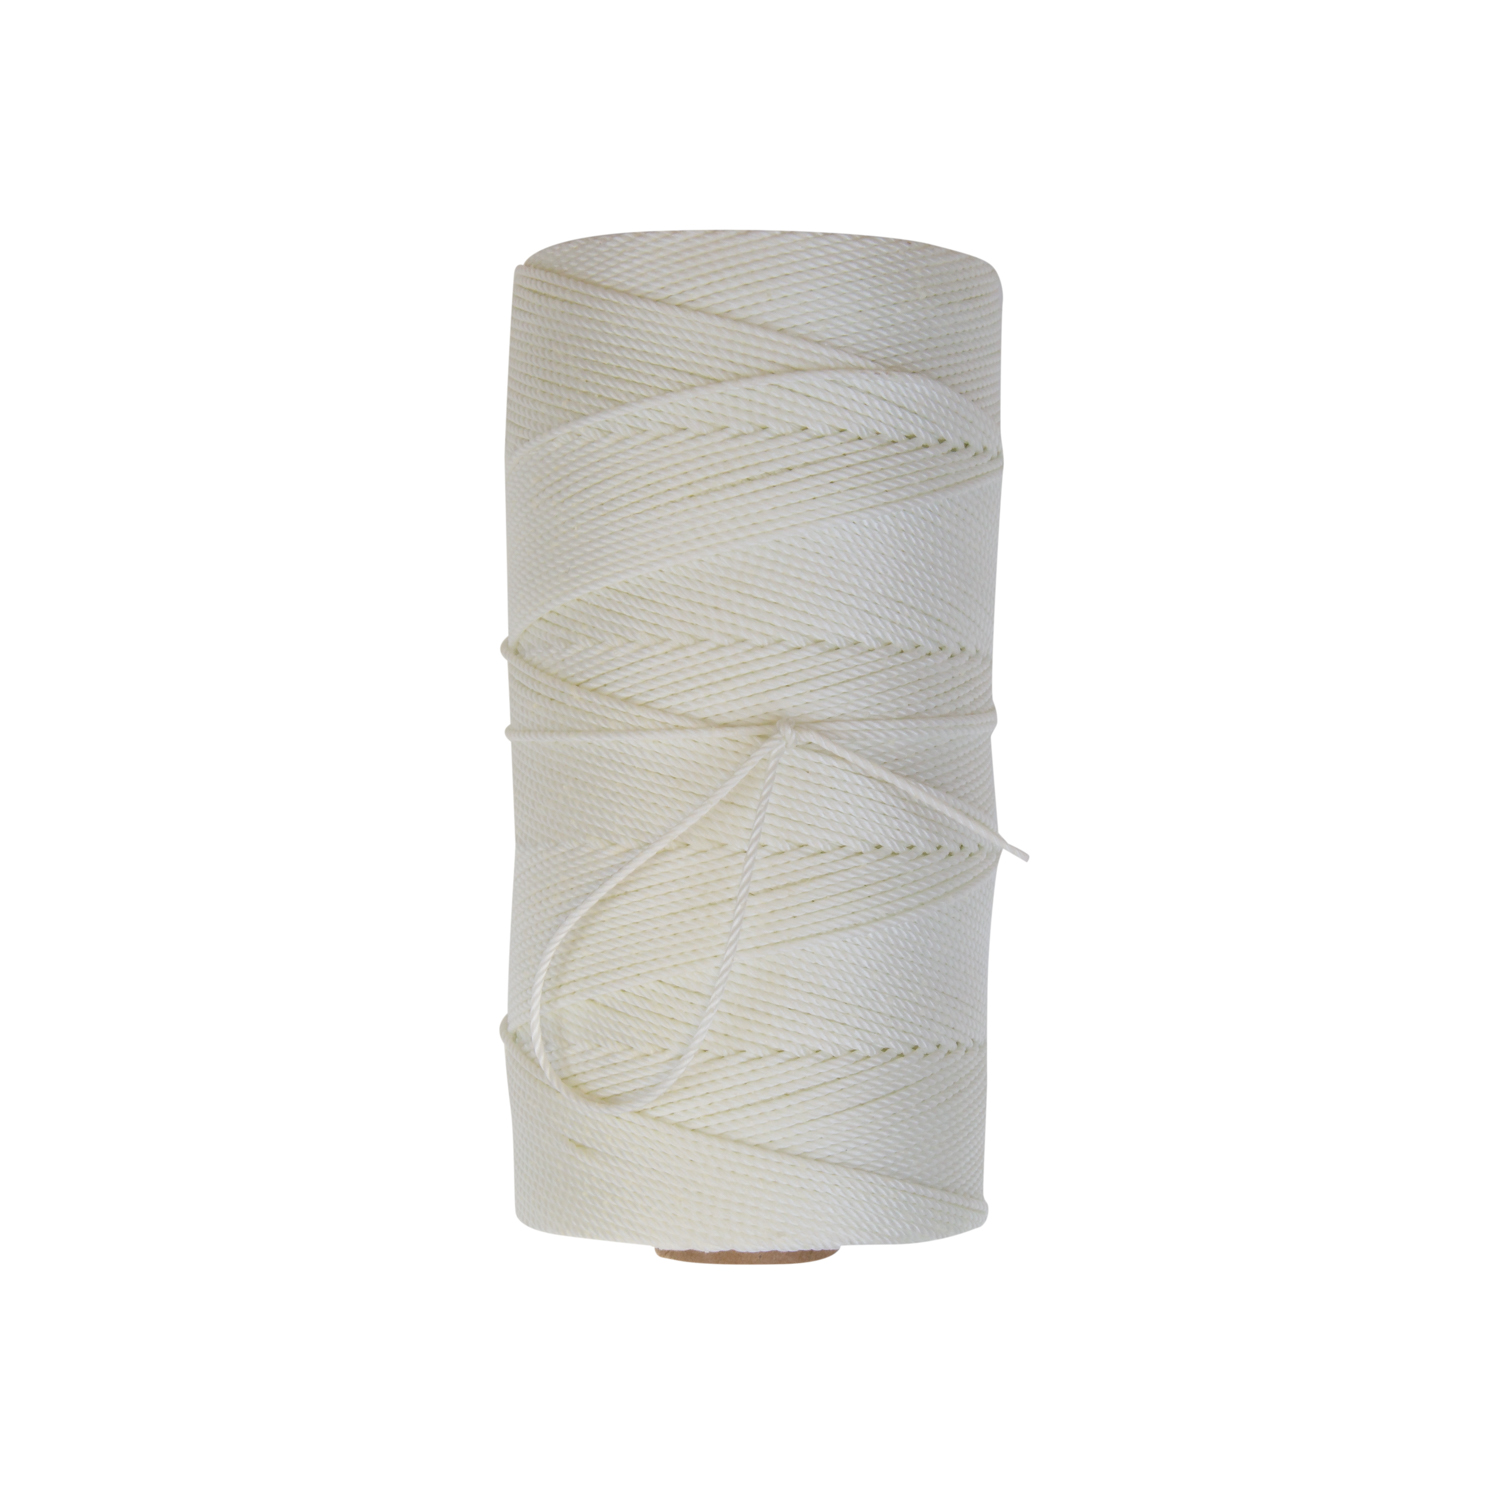 Bonded Seine Twine - Three strand twisted 100% industrial nylon that is linear processed in urethane bonding solution, brushed, and then dried in gas fired ovens. Can be white (clear) bonded or green bonded.